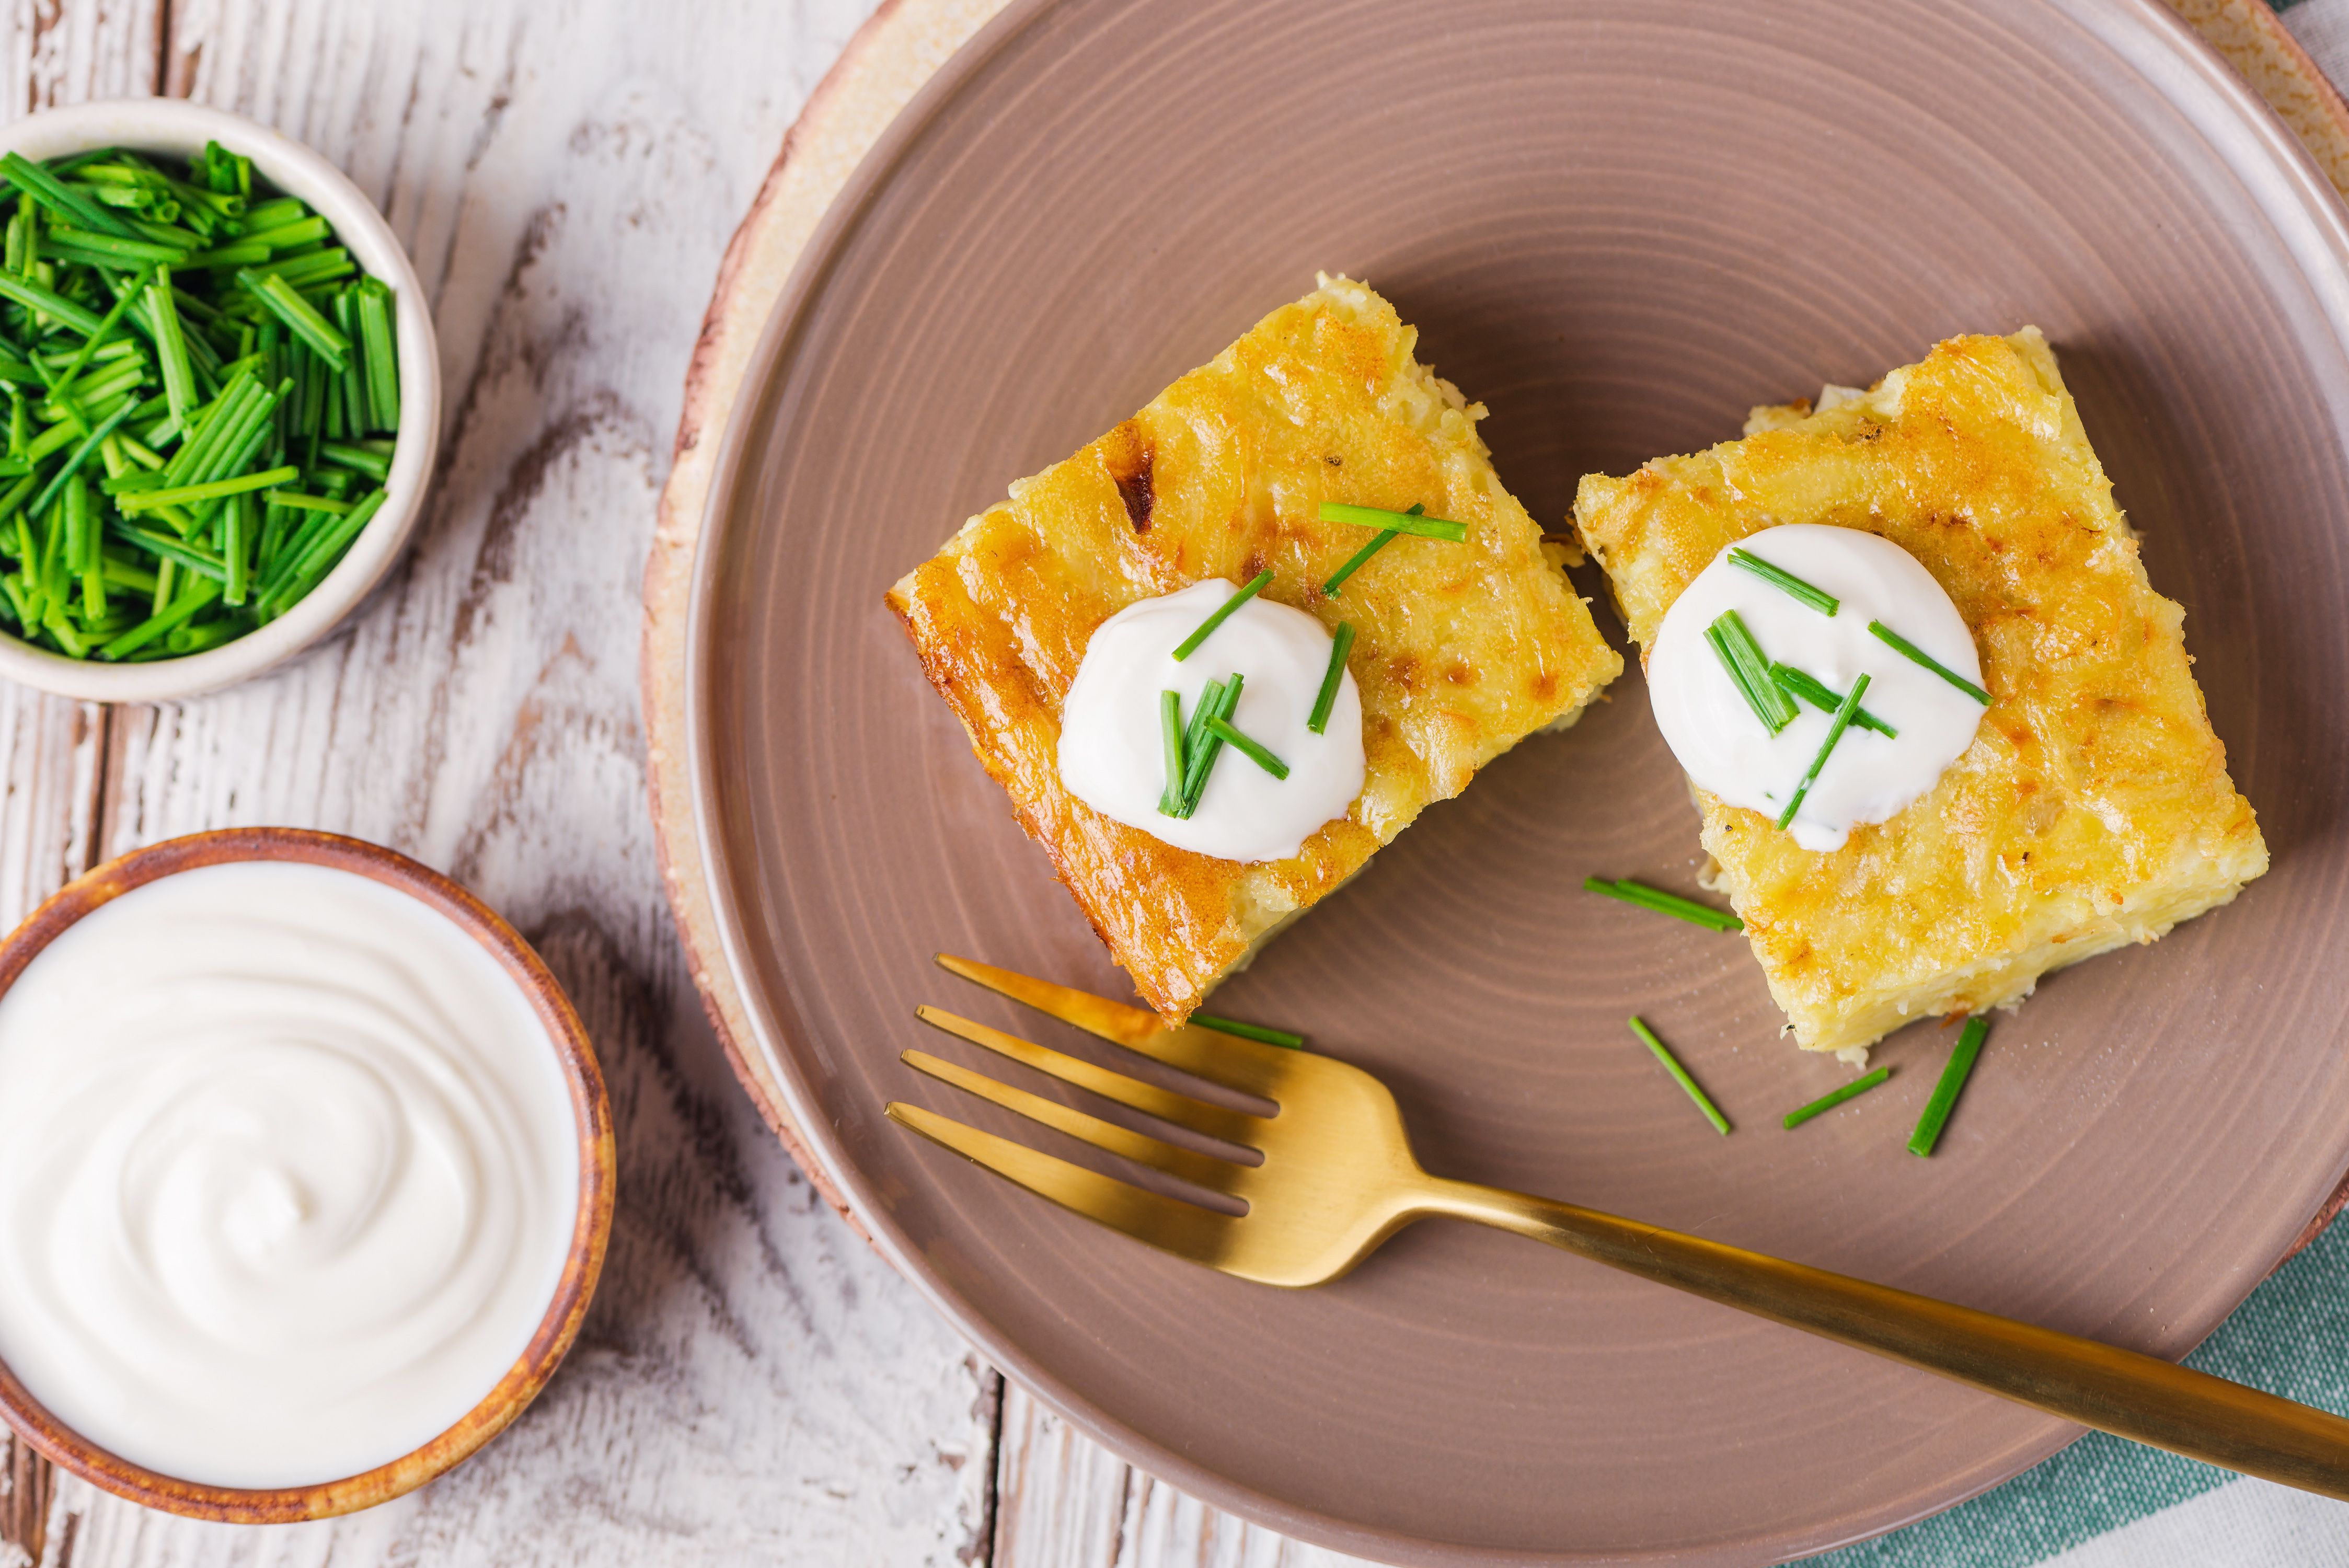 Serve kugel with sour cream and chives